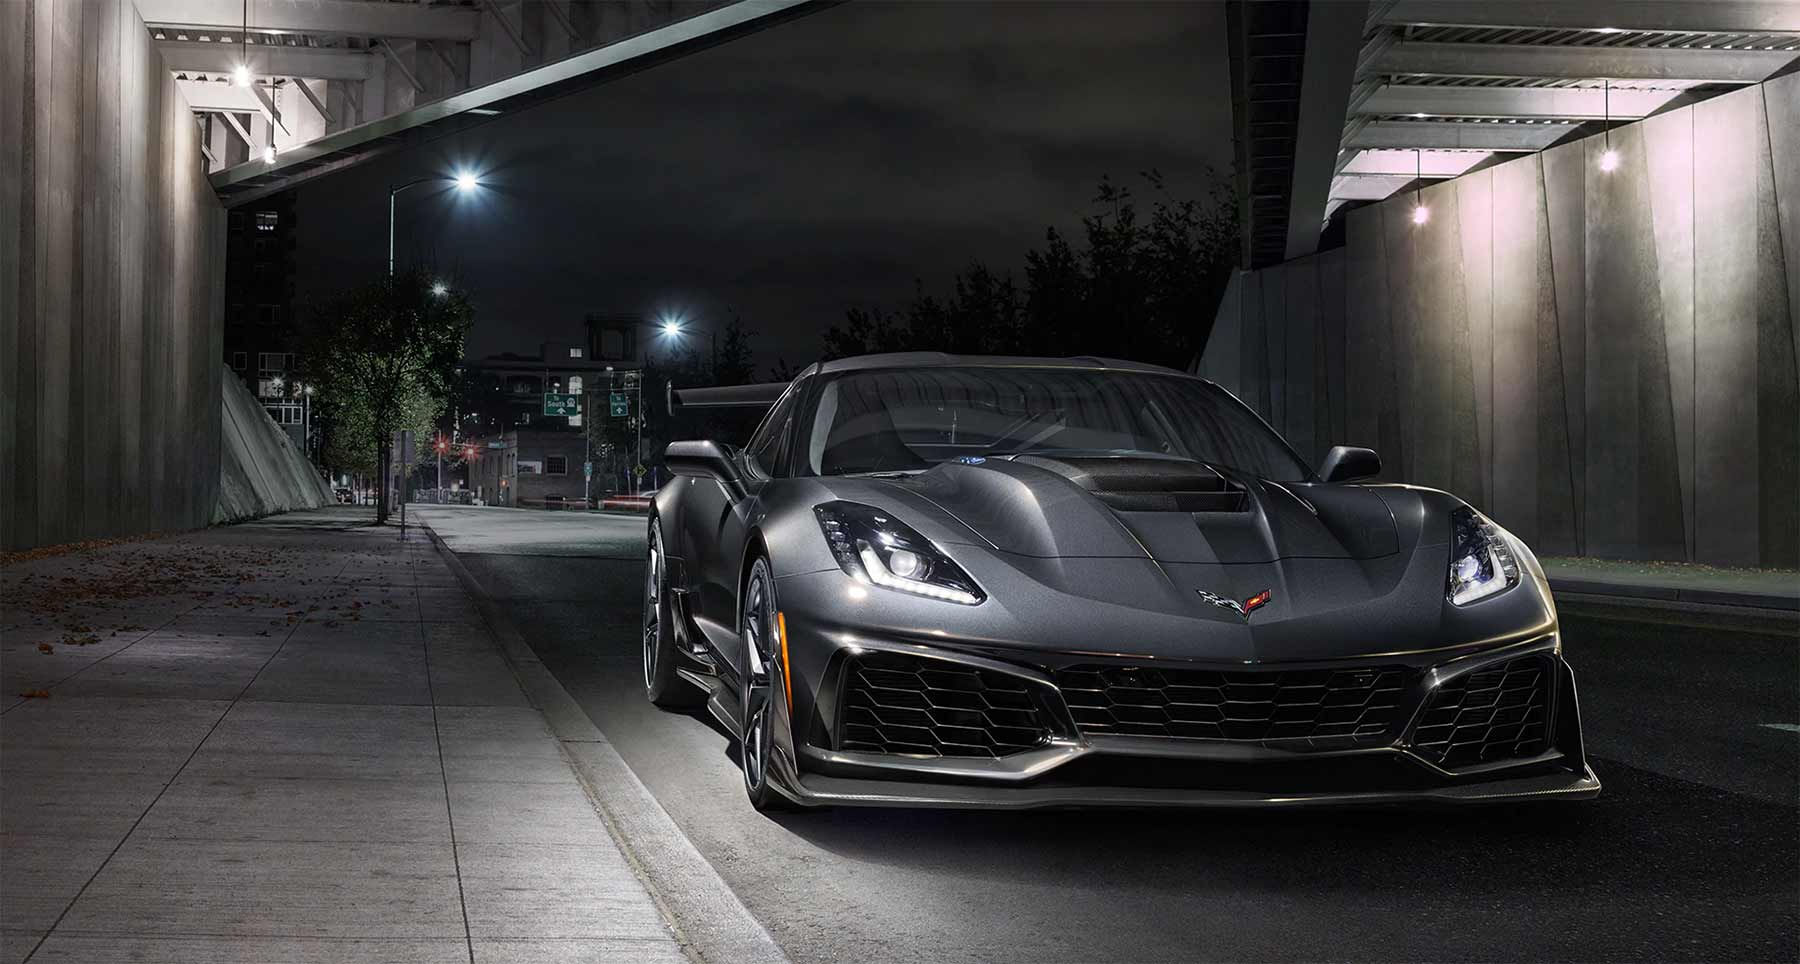 2019 Chevy Corvette ZR1 2019-Chevy-Corvette-ZR1_03